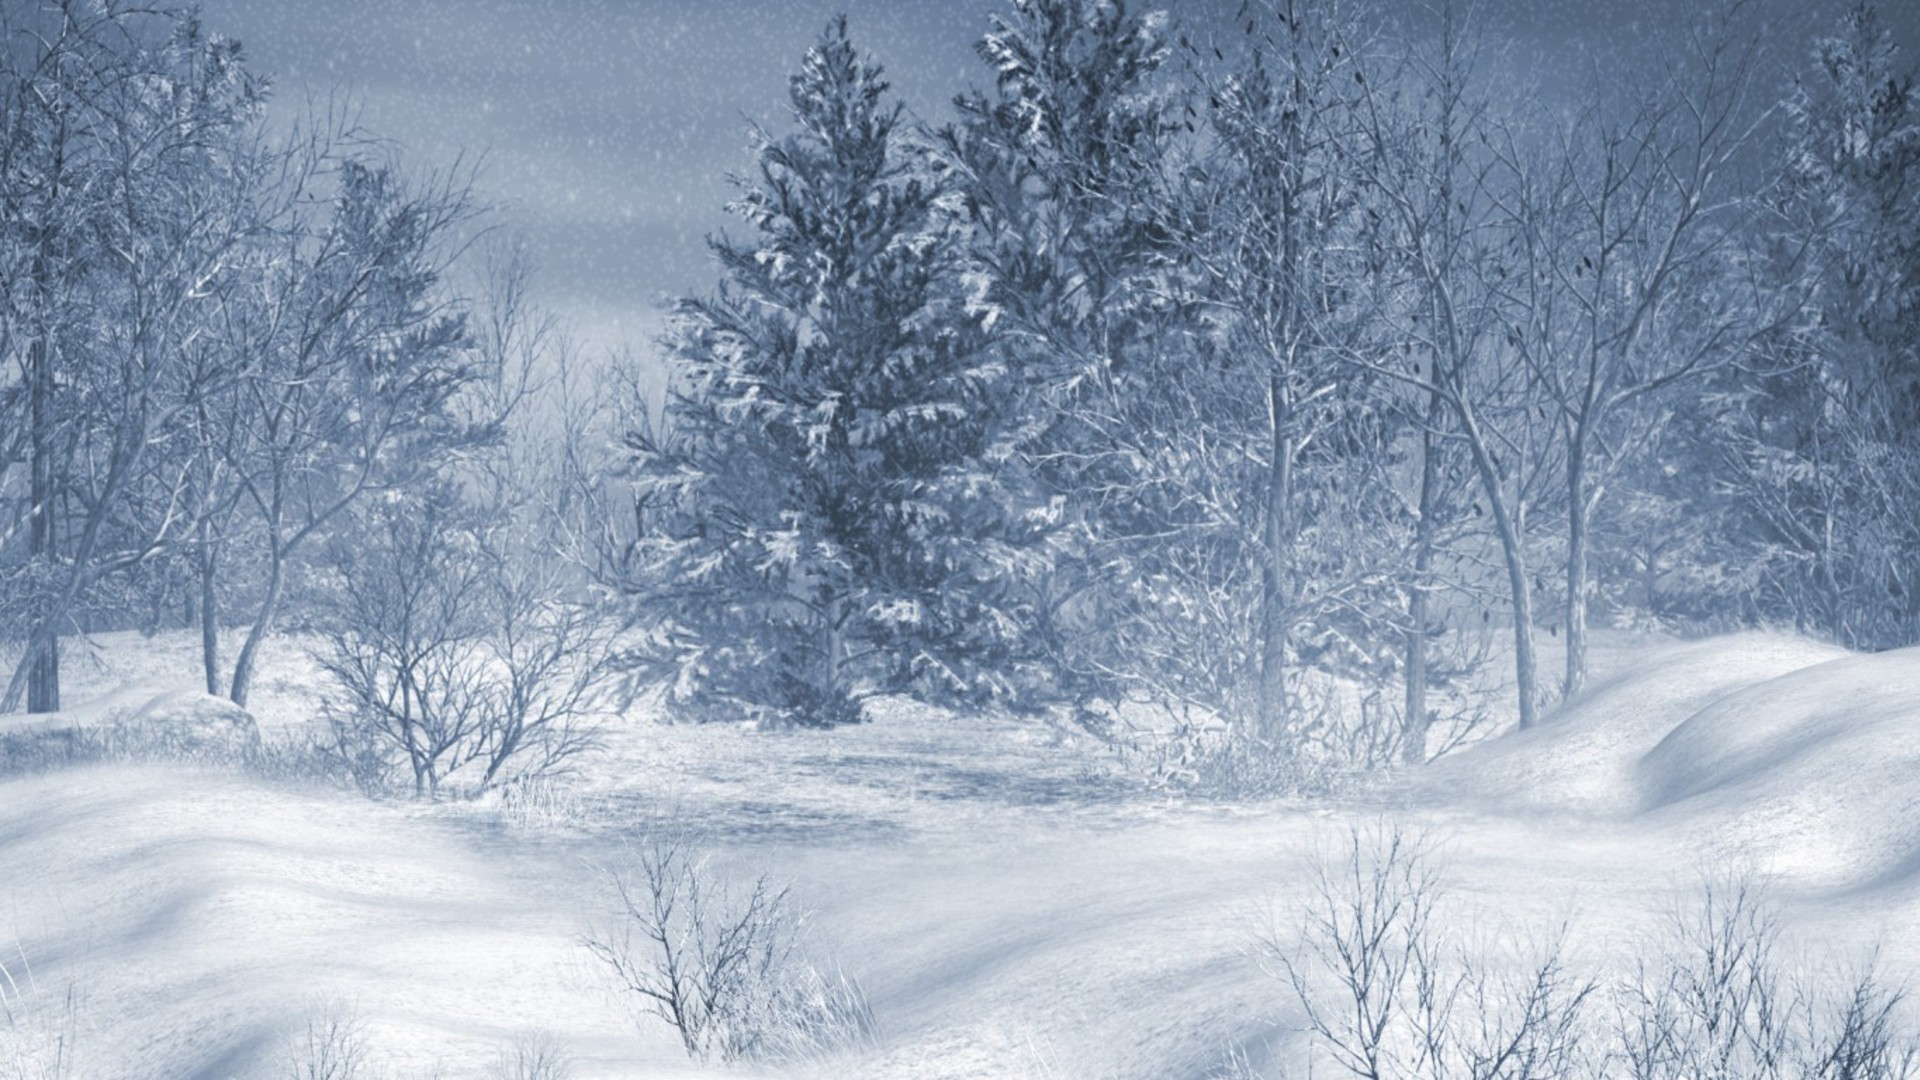 Snow Falling Wallpaper For Ipad Landscapes Nature Winter Snow Trees Wallpaper